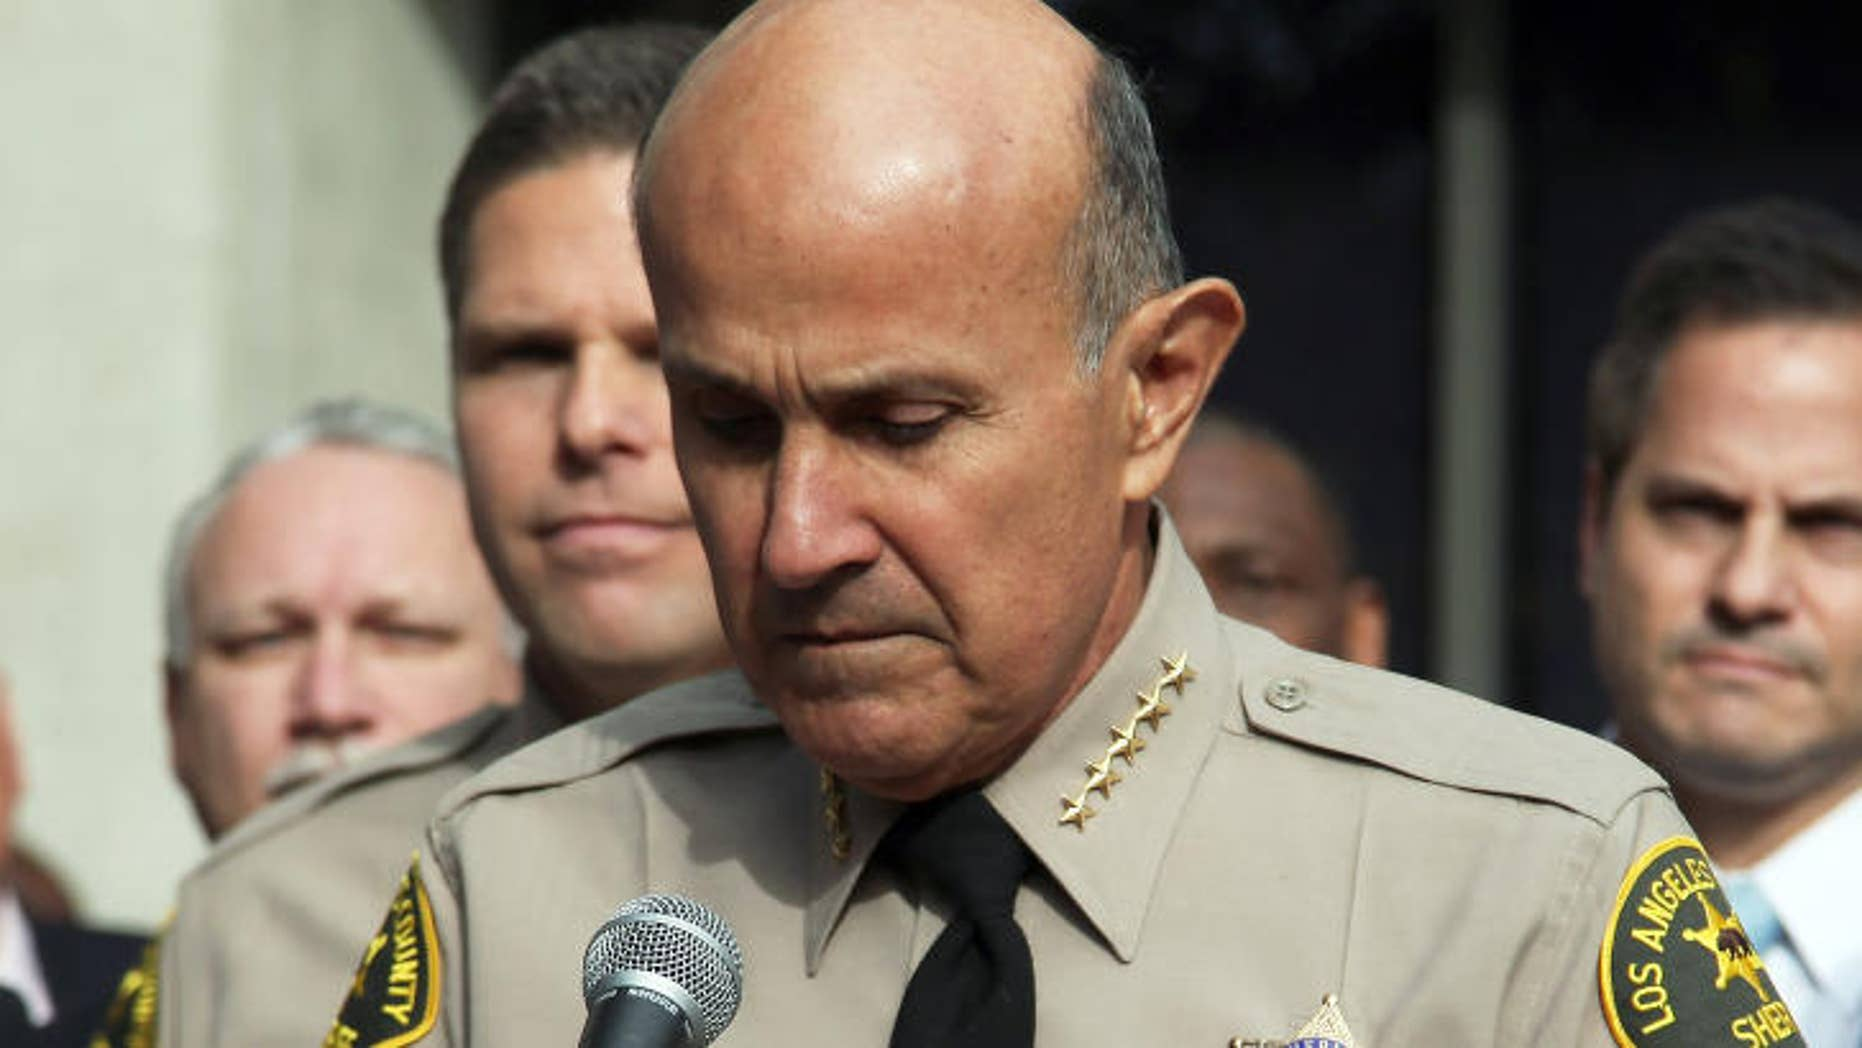 Former Los Angeles County Sheriff Lee Baca in 2014.